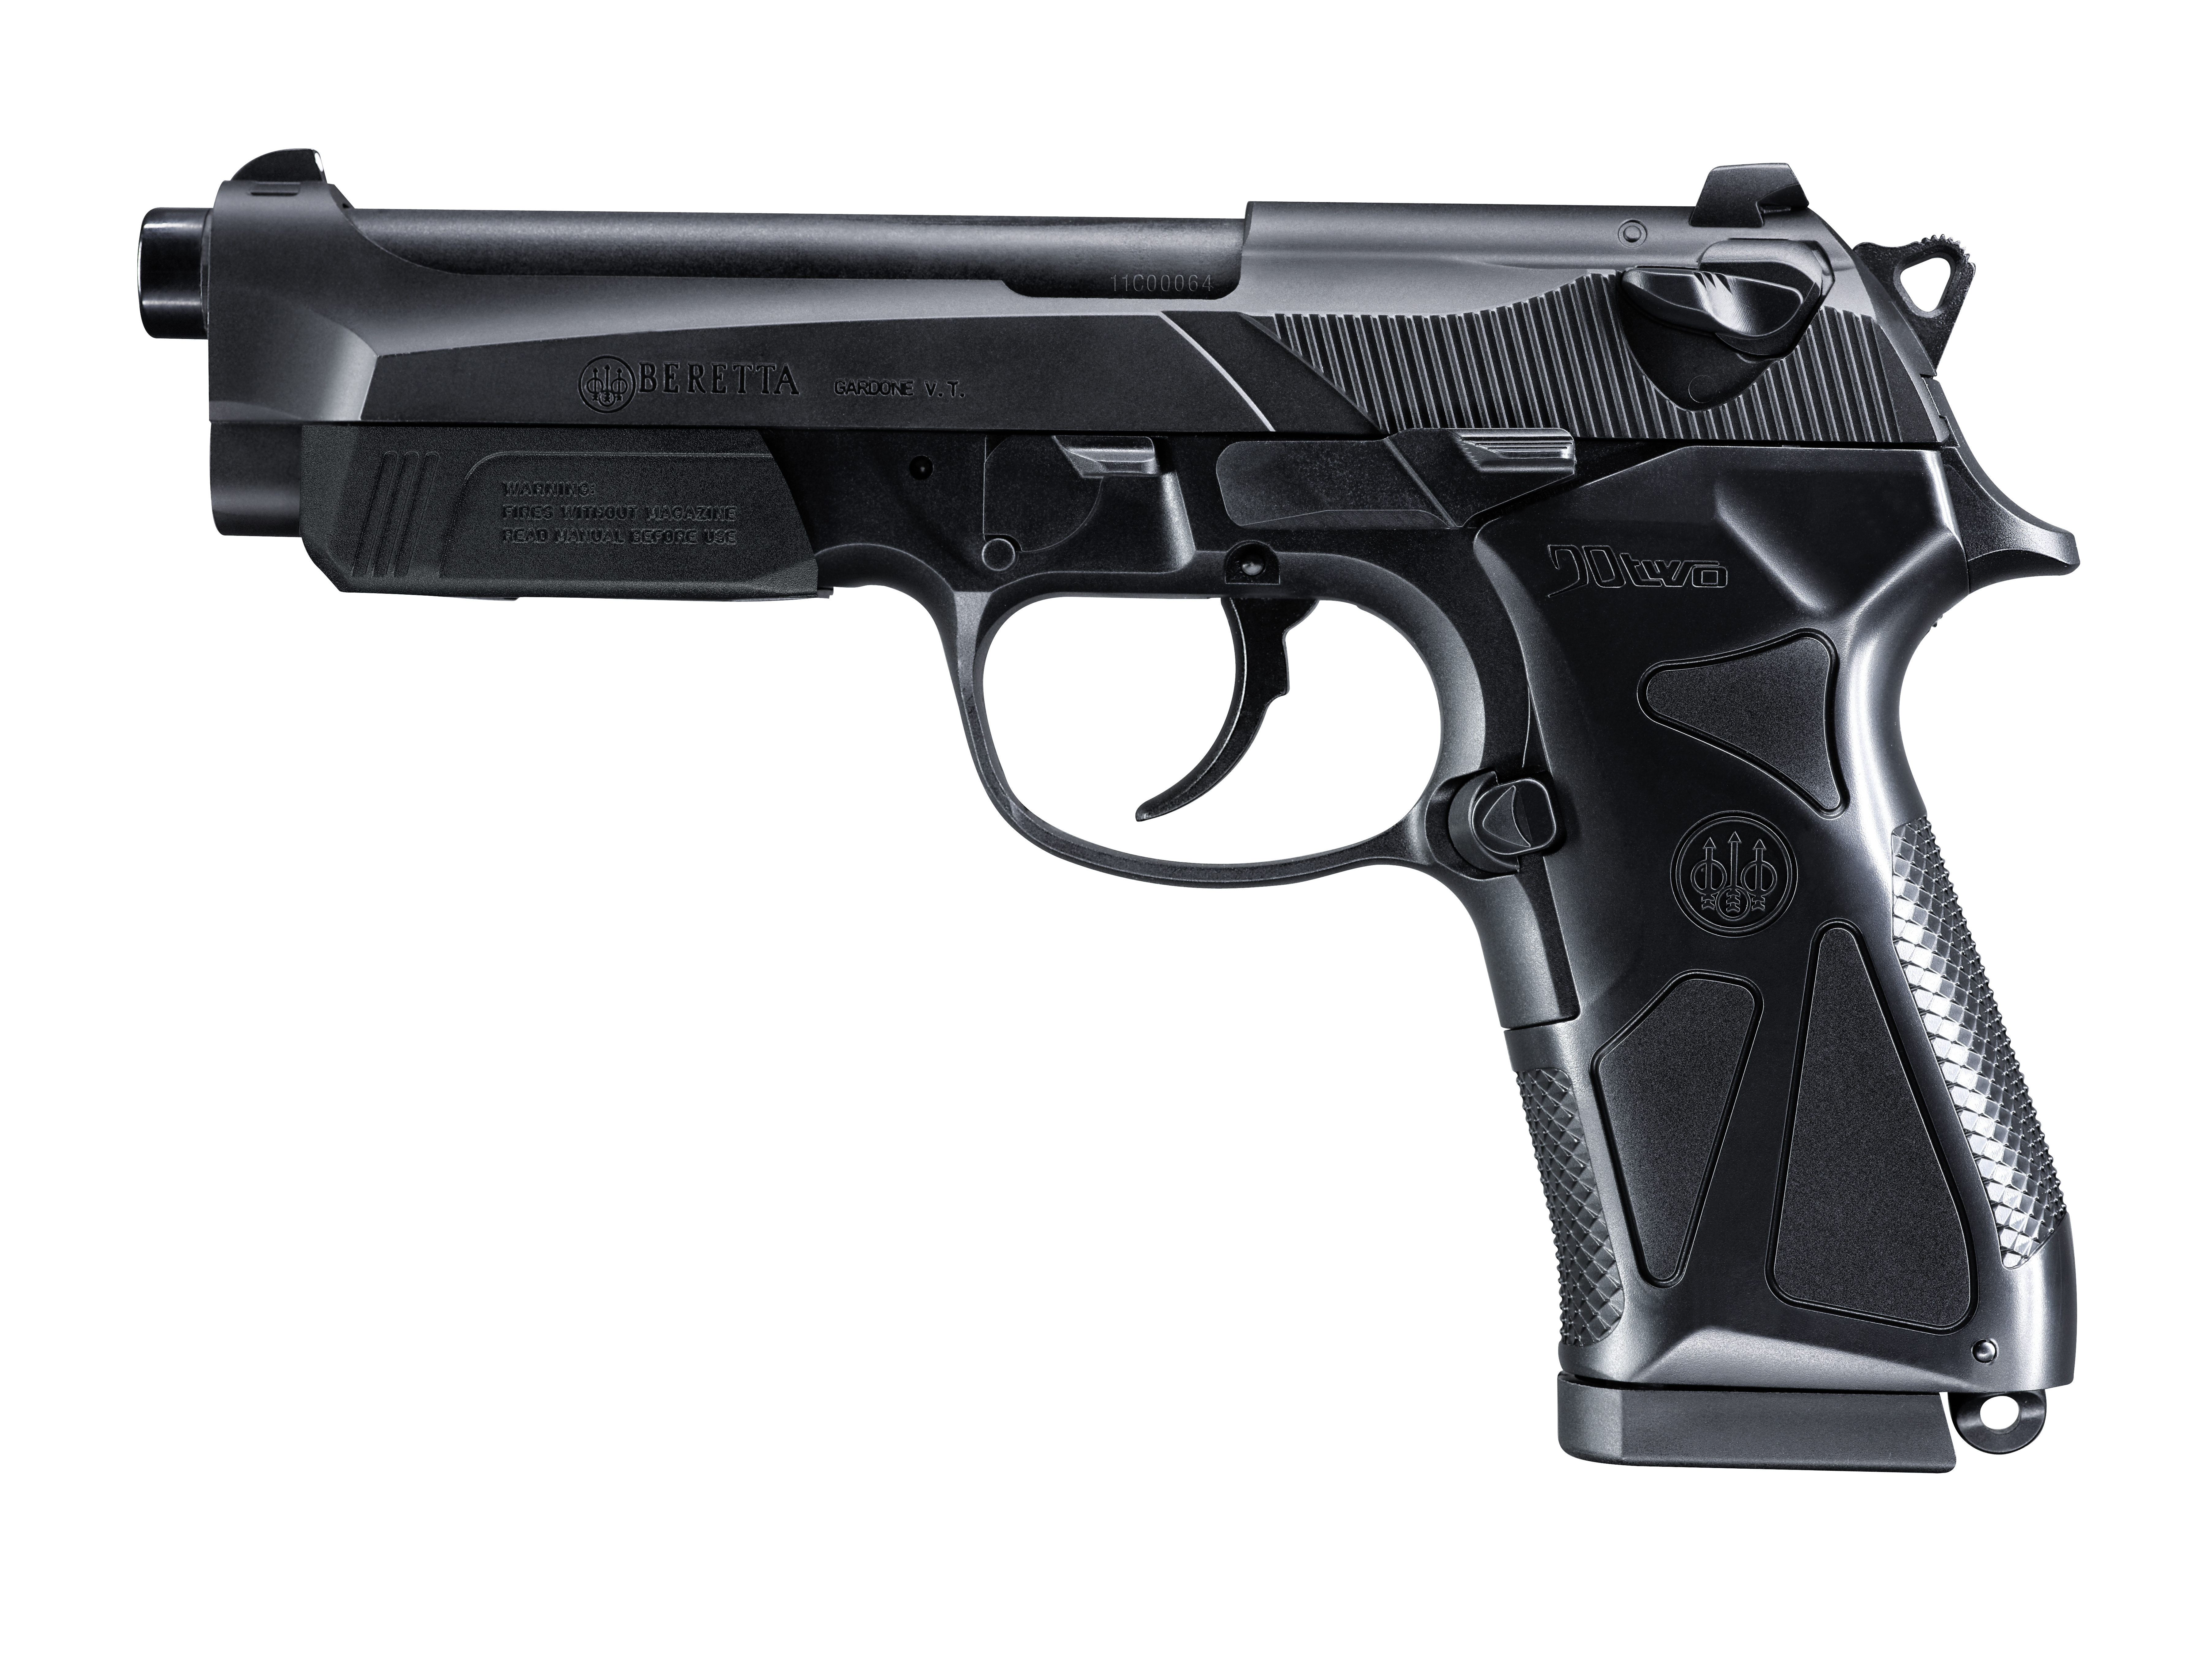 BERETTA (Umarex) Airsoft Spring Operated 90two